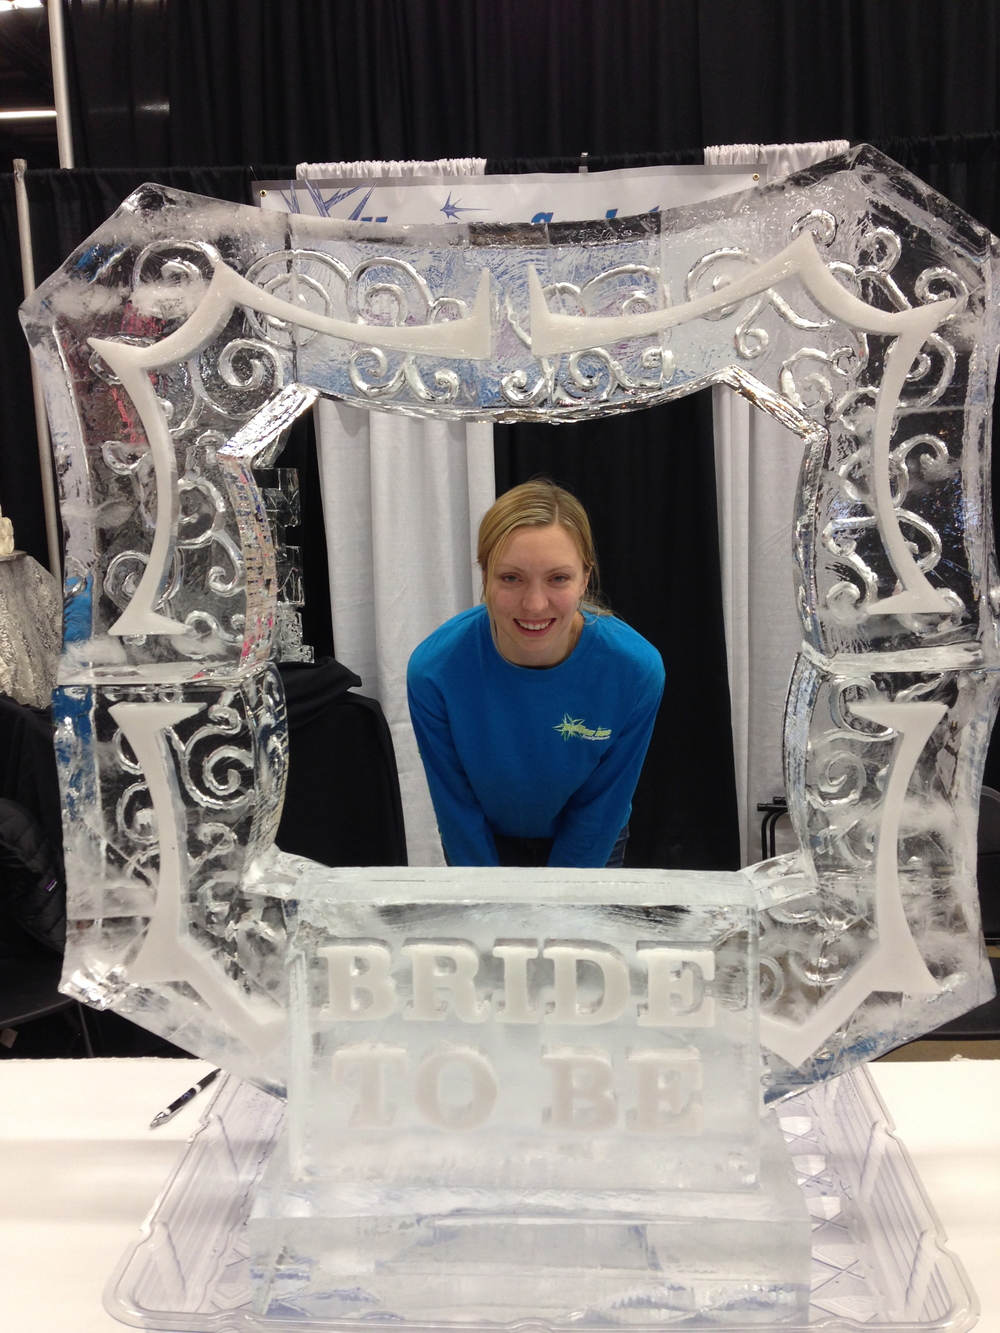 stellar-ice-sculpture-bride-to-be-dallas.jpg